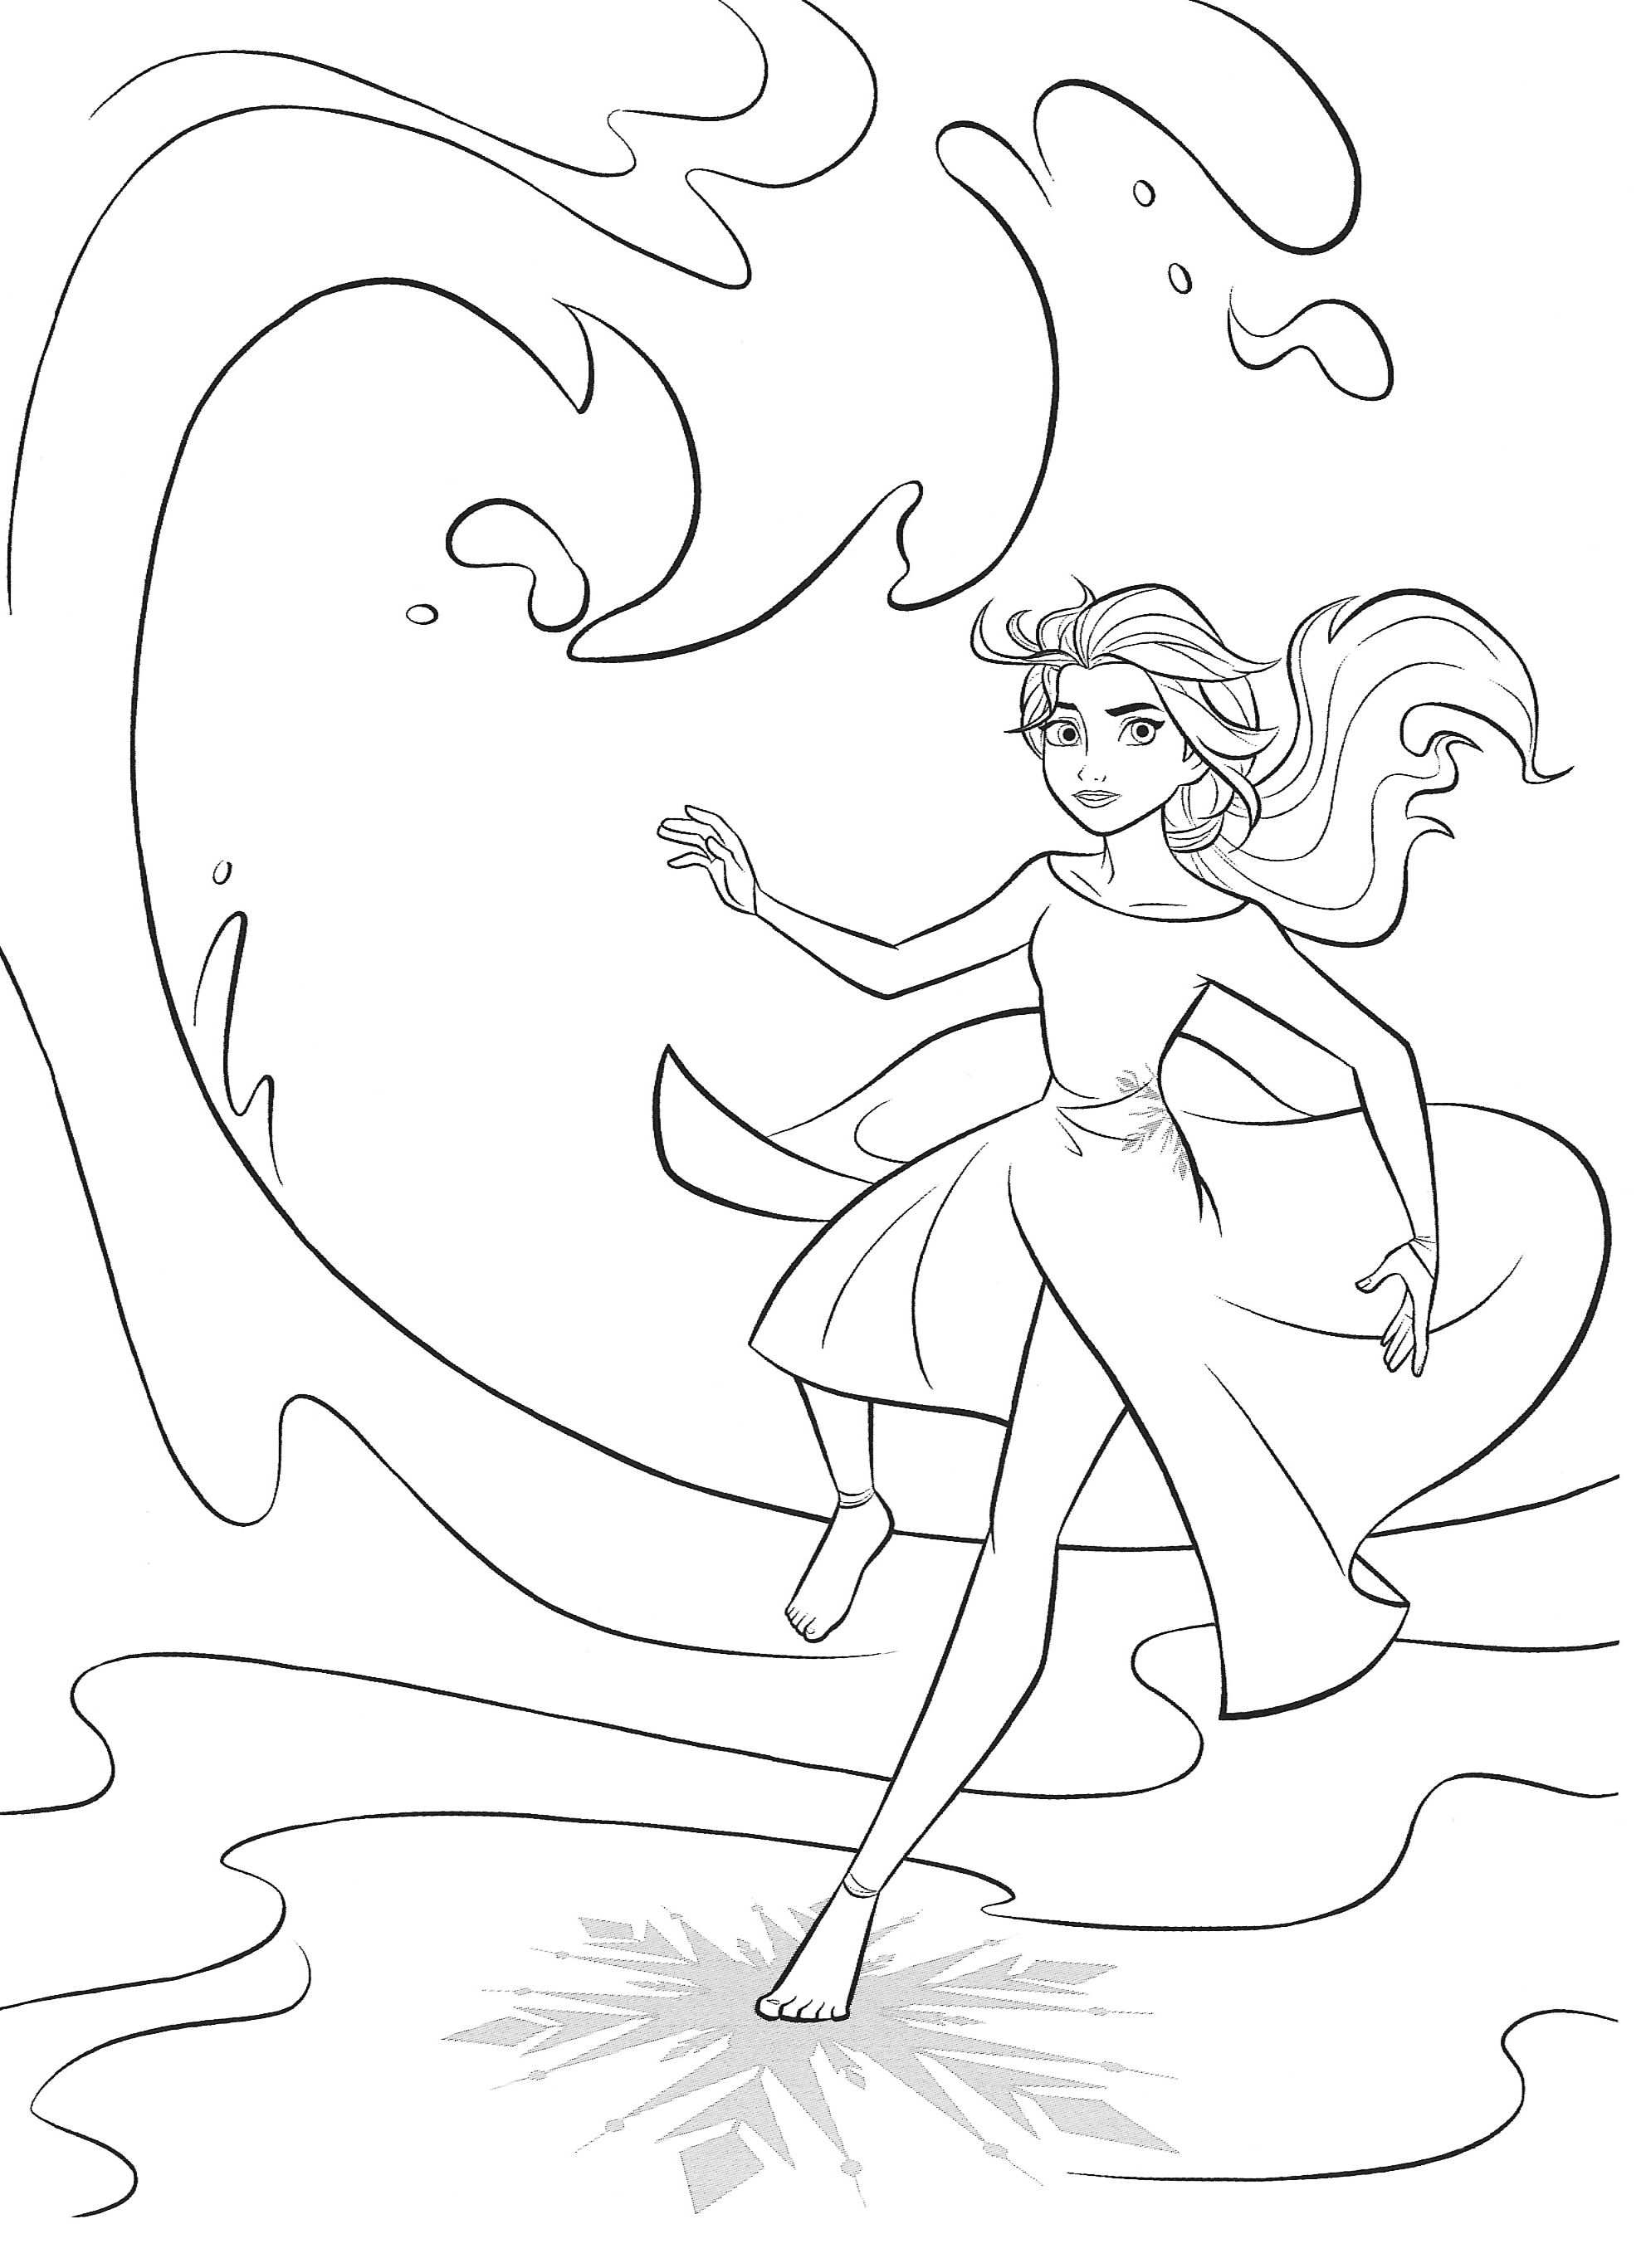 New Frozen 2 Coloring Pages With Elsa In 2020 With Images